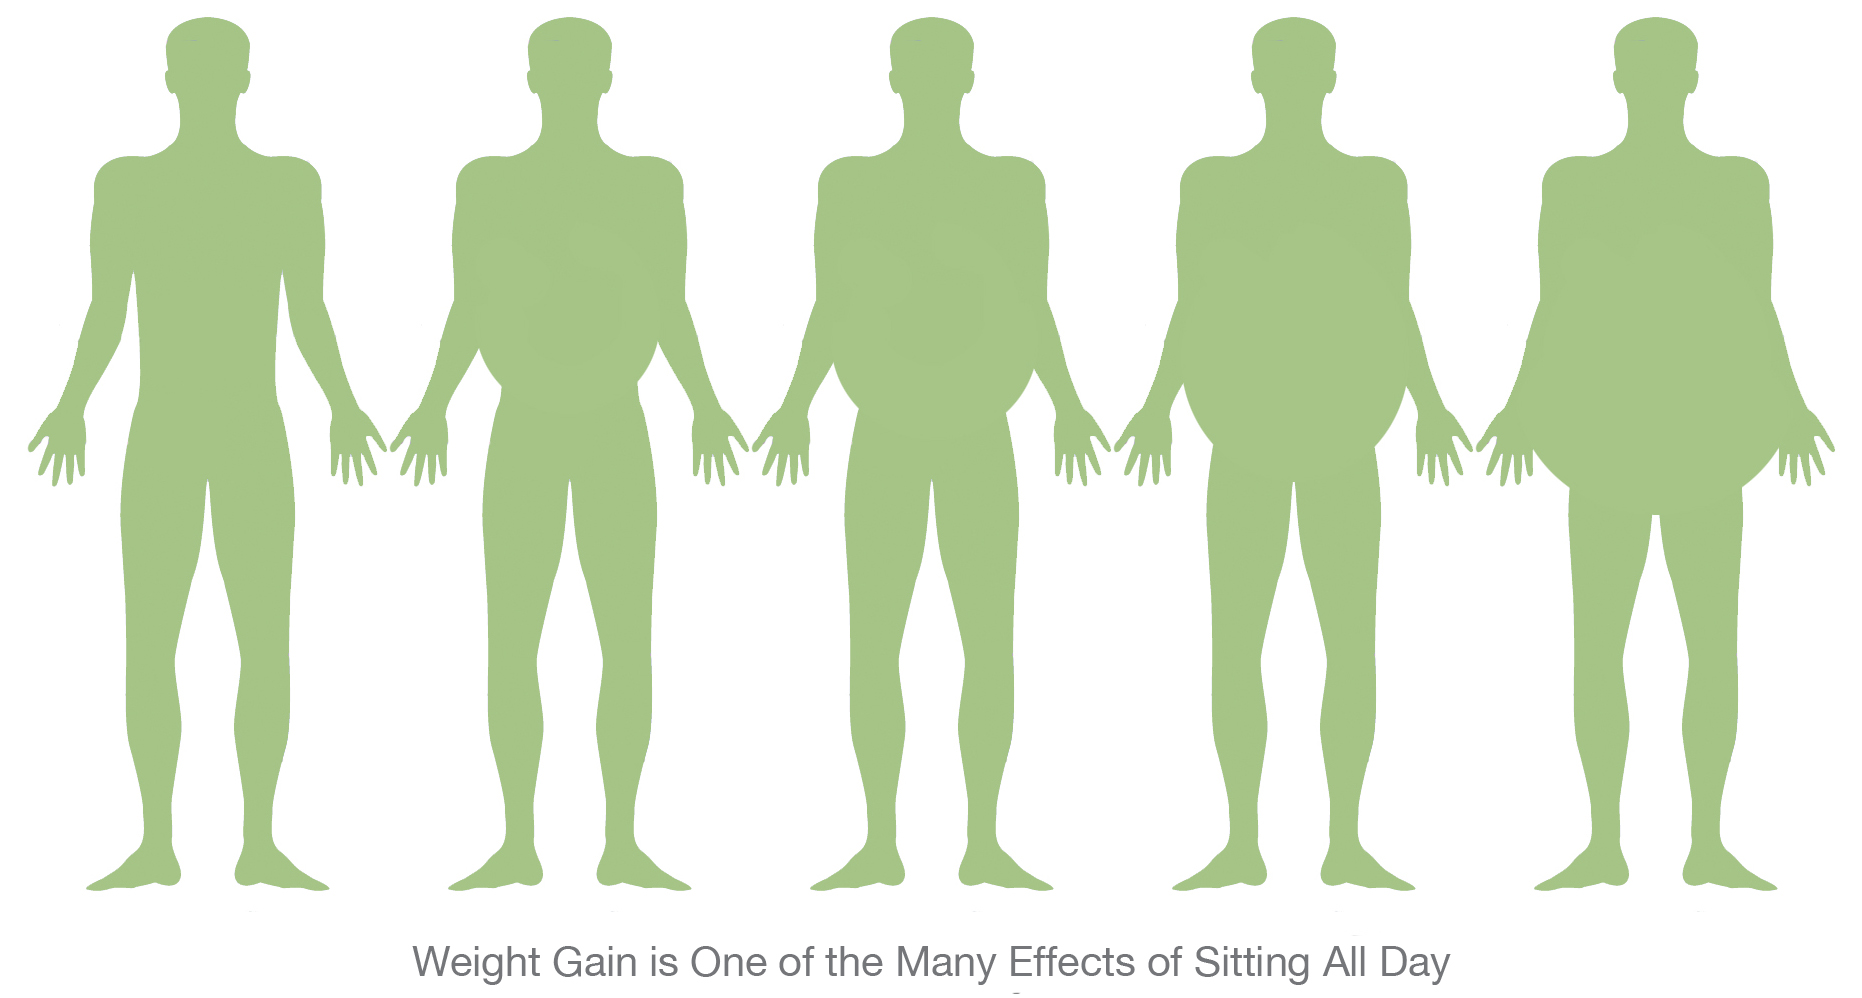 weight-gain-effect-of-sitting-all-day-heart-disease-obesity-overweight.jpg